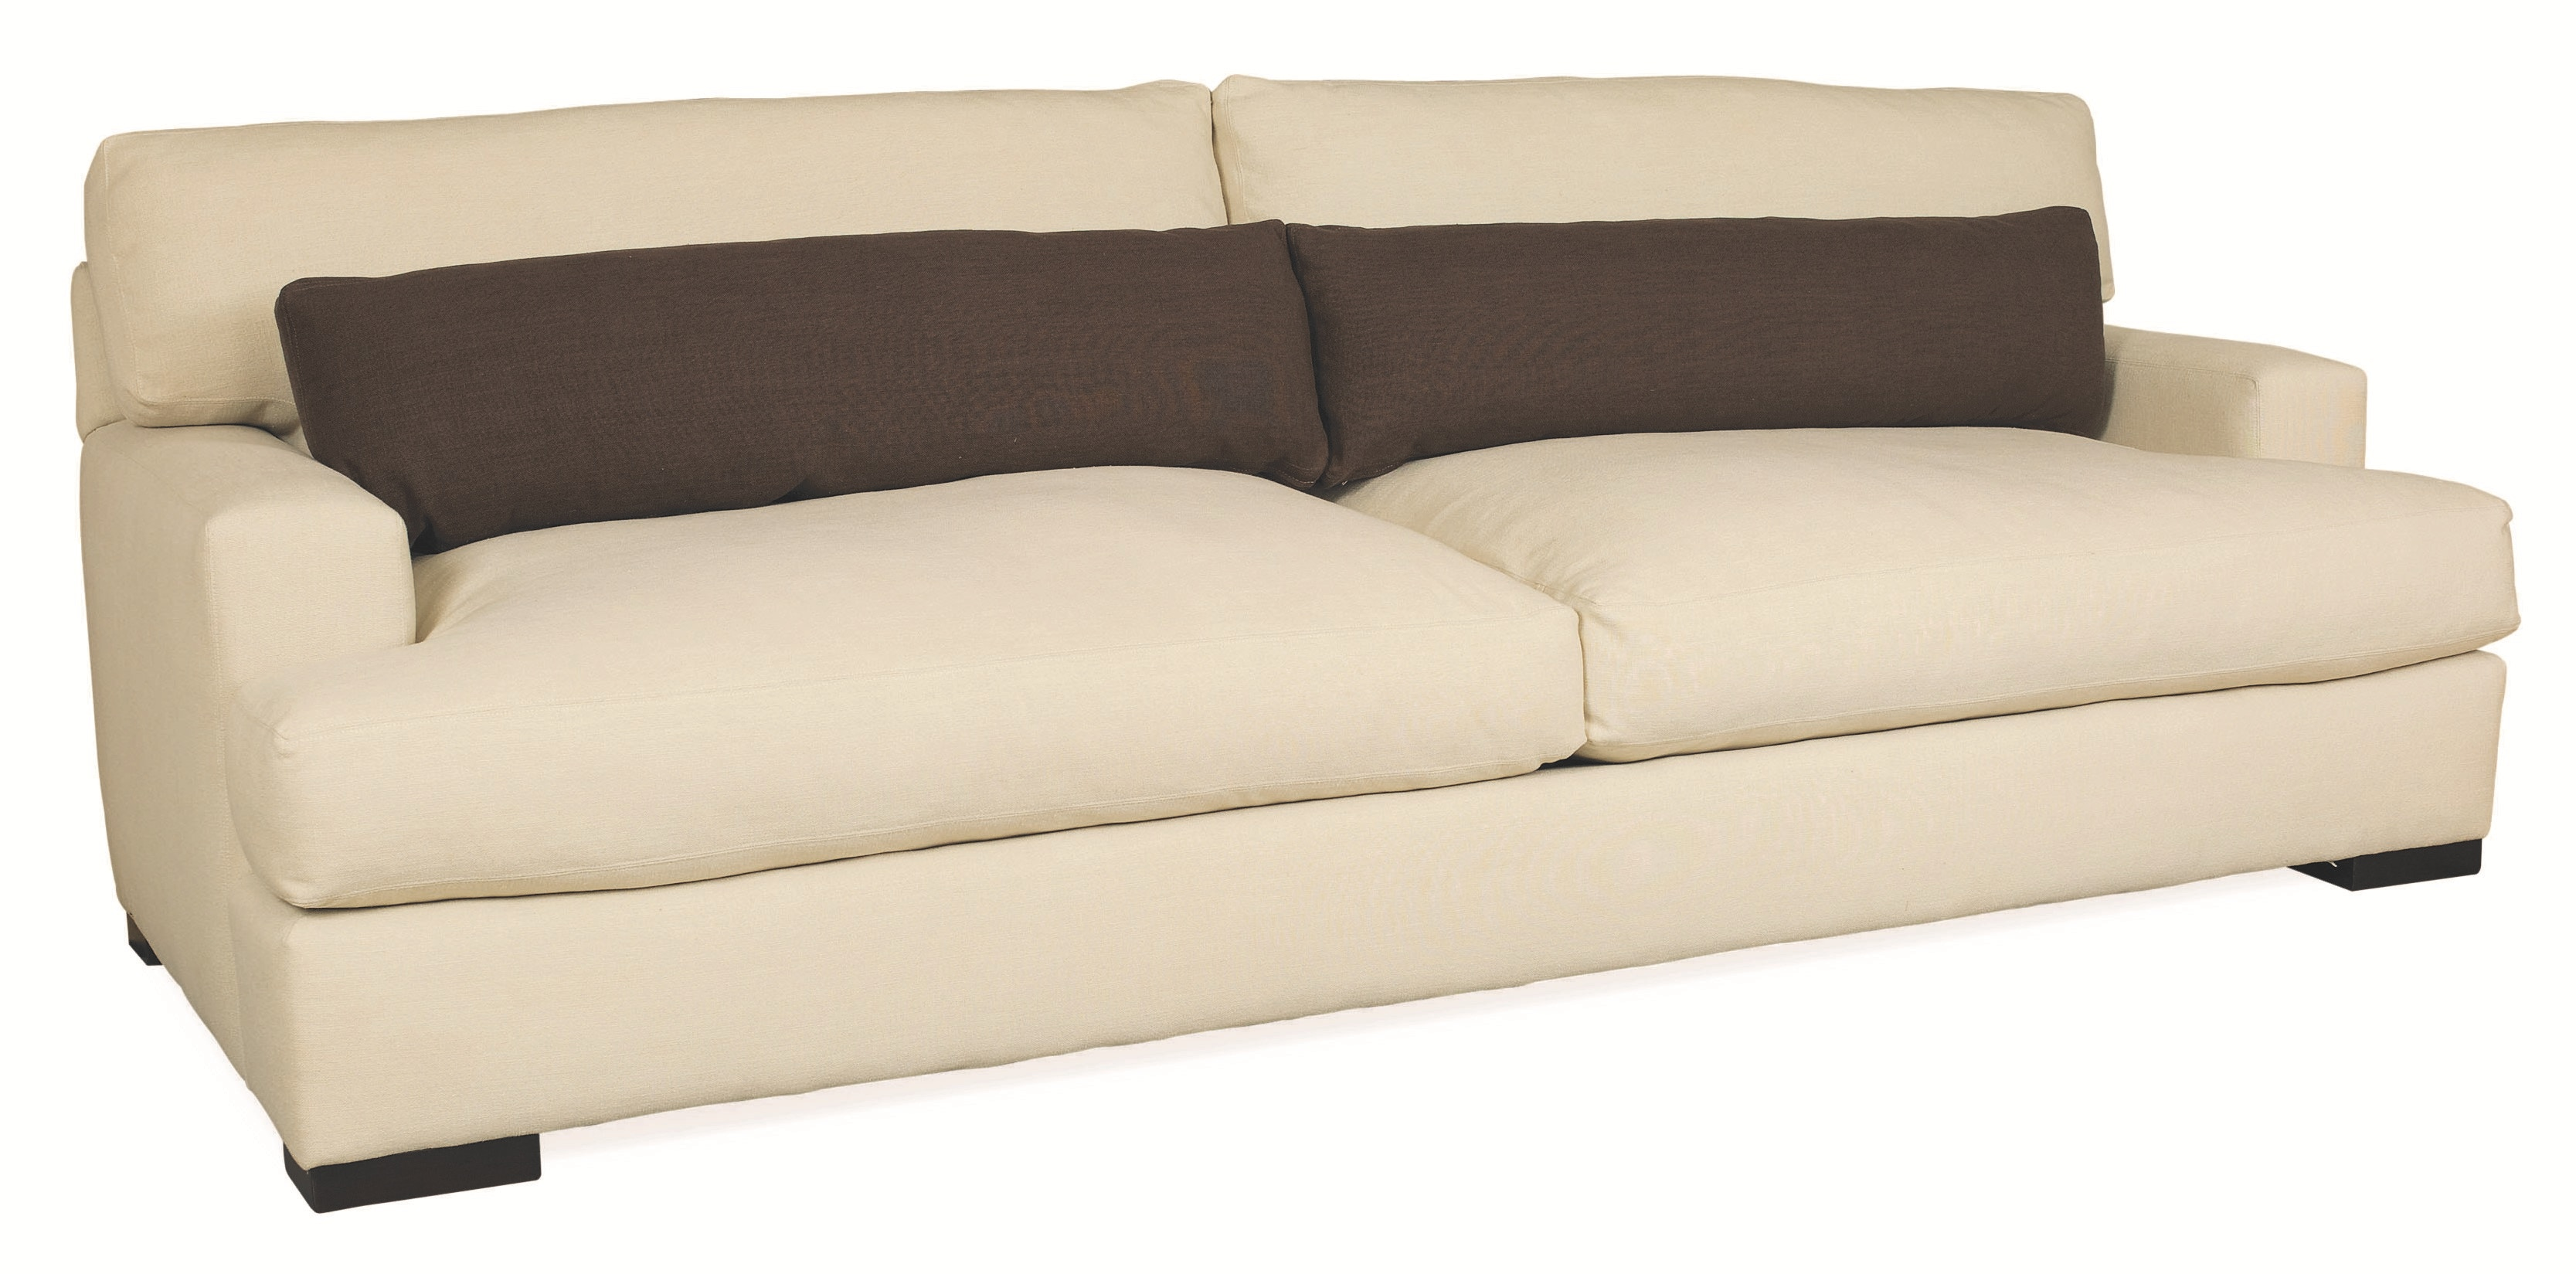 Lee Industries Sofa 7822 03